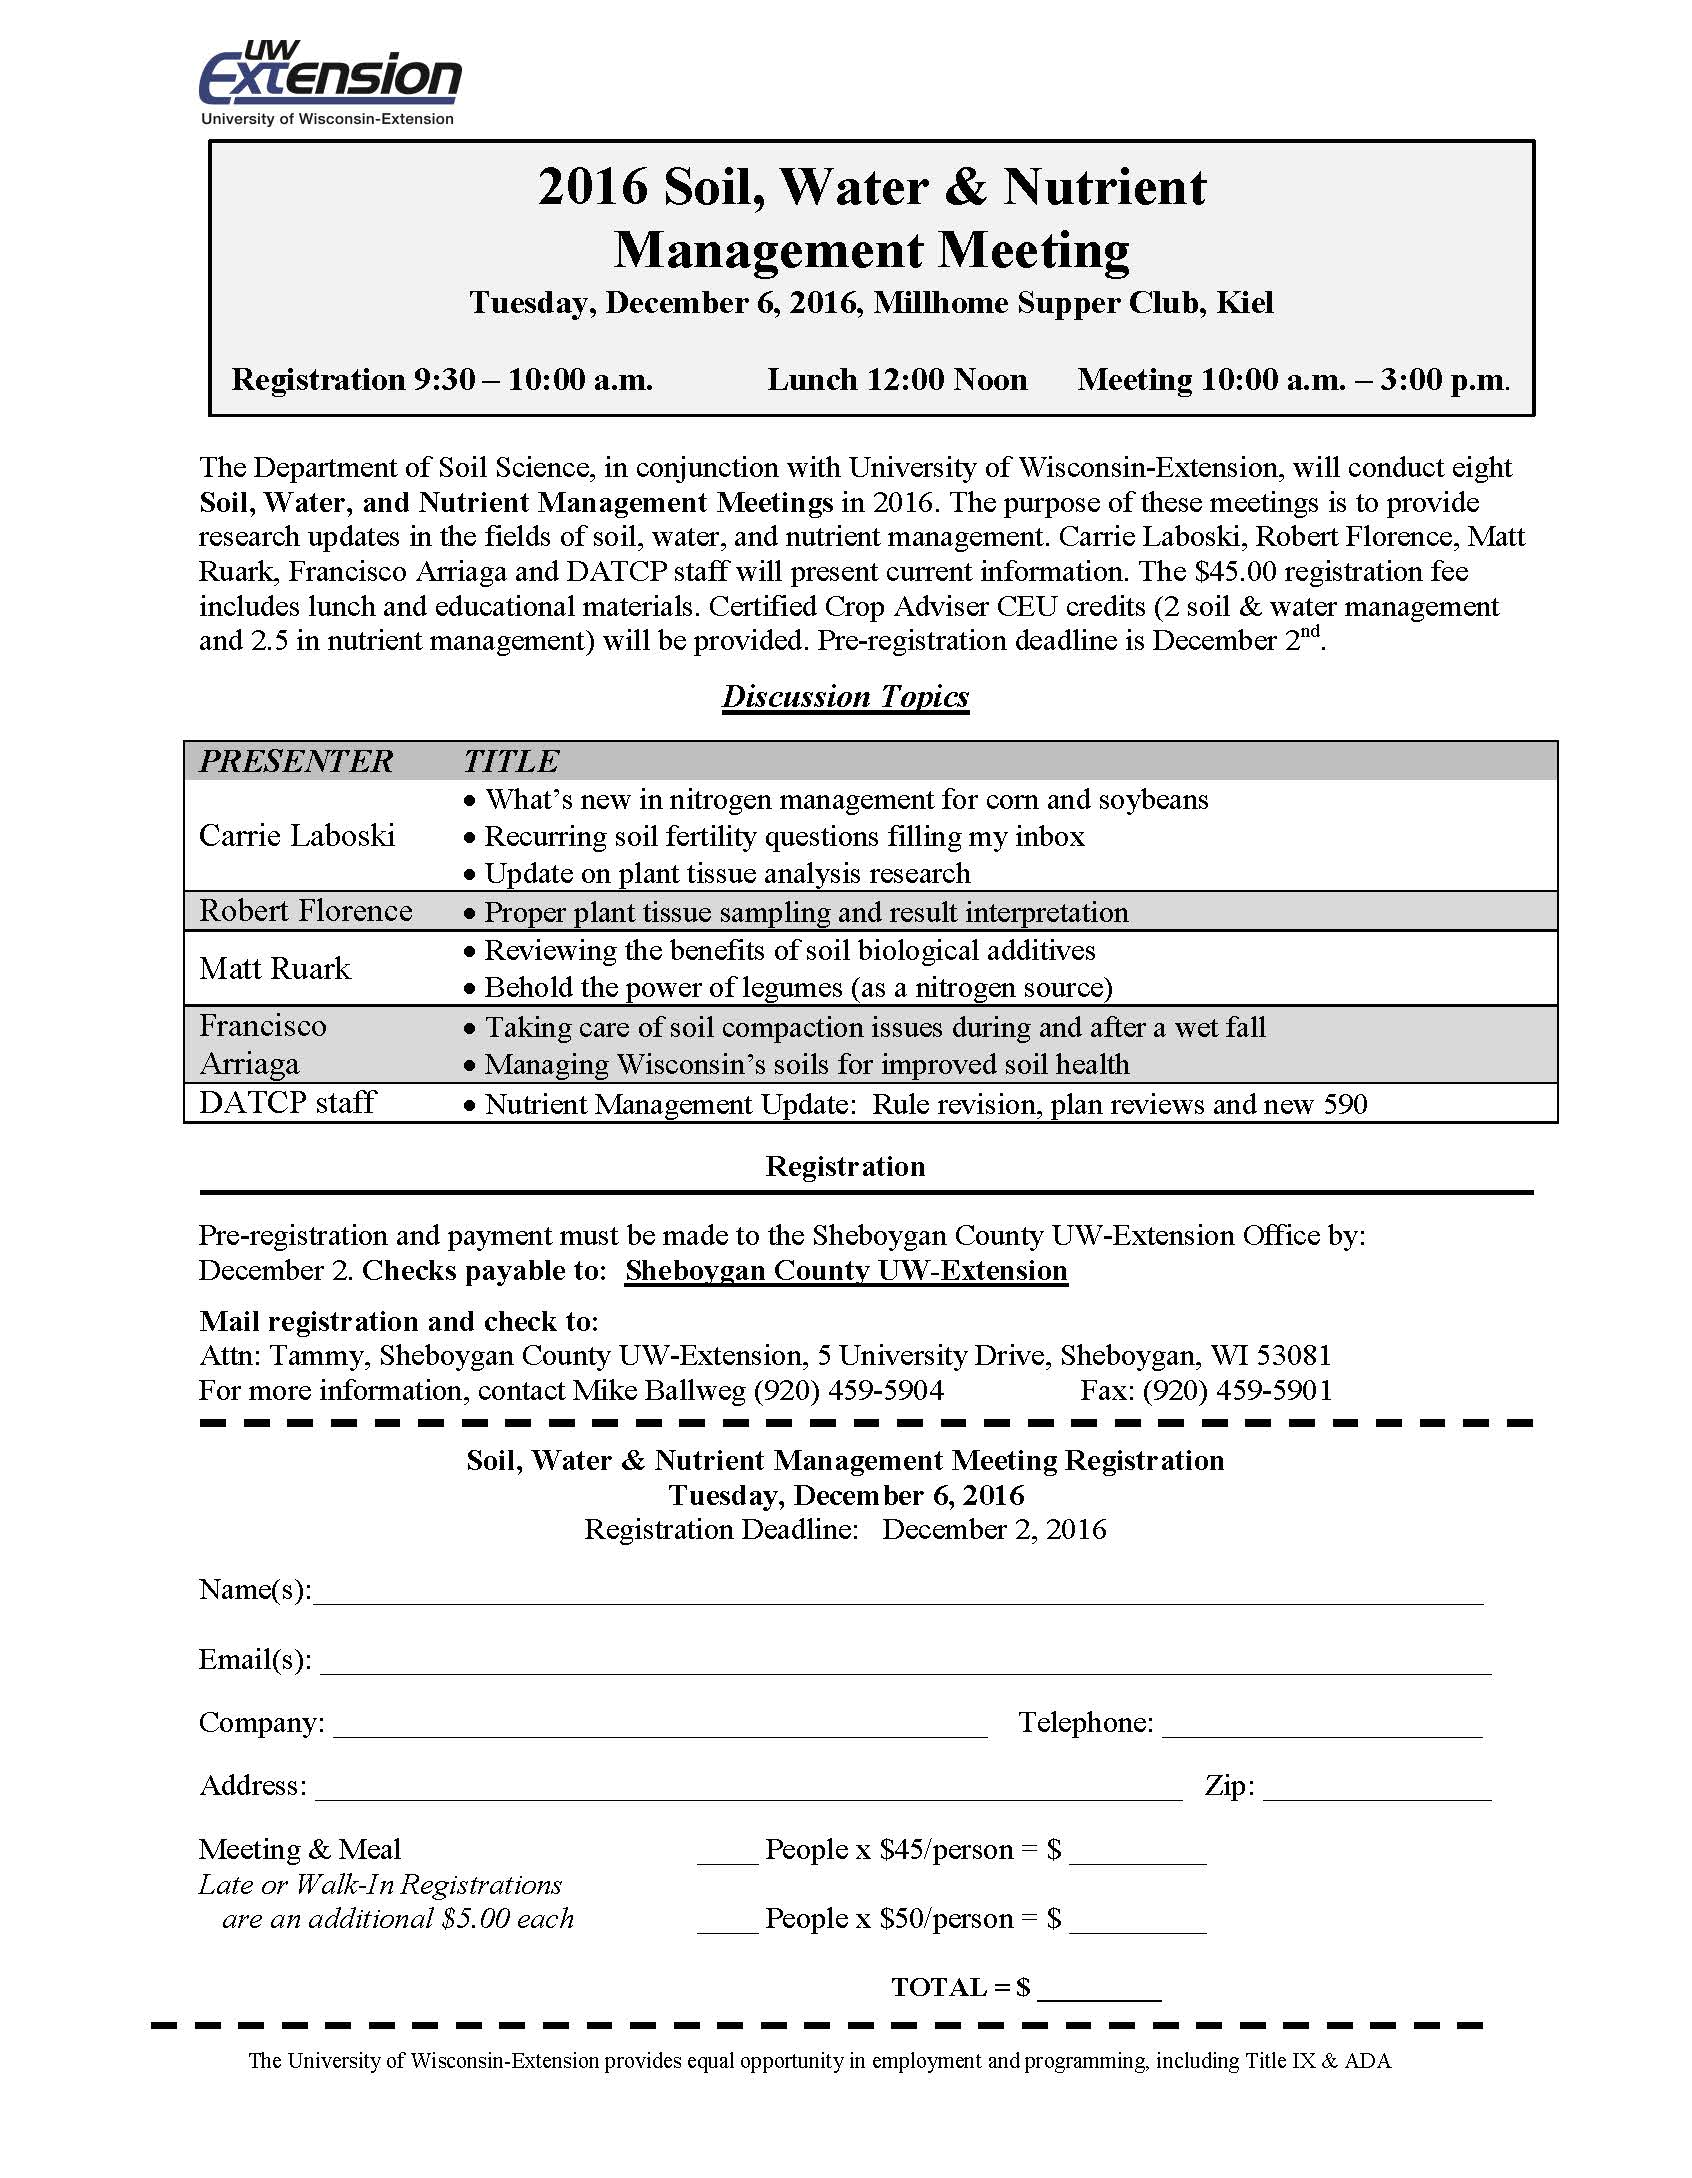 2016 Soil Water and Nutrient Management Registration Form